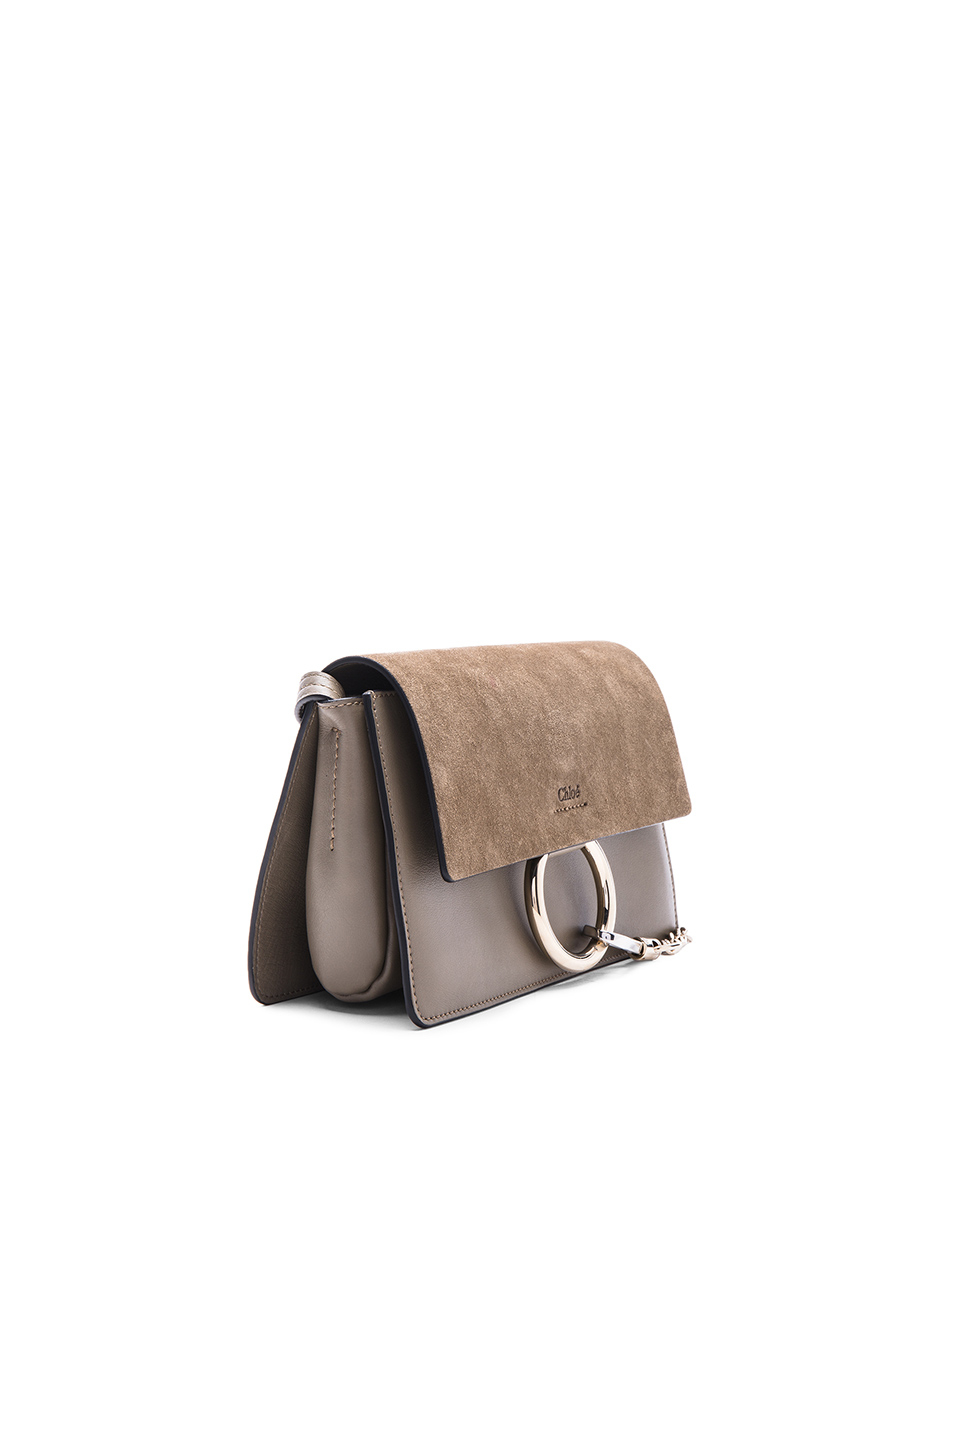 chole bags - faye small bag in diamond embossed smooth calfskin